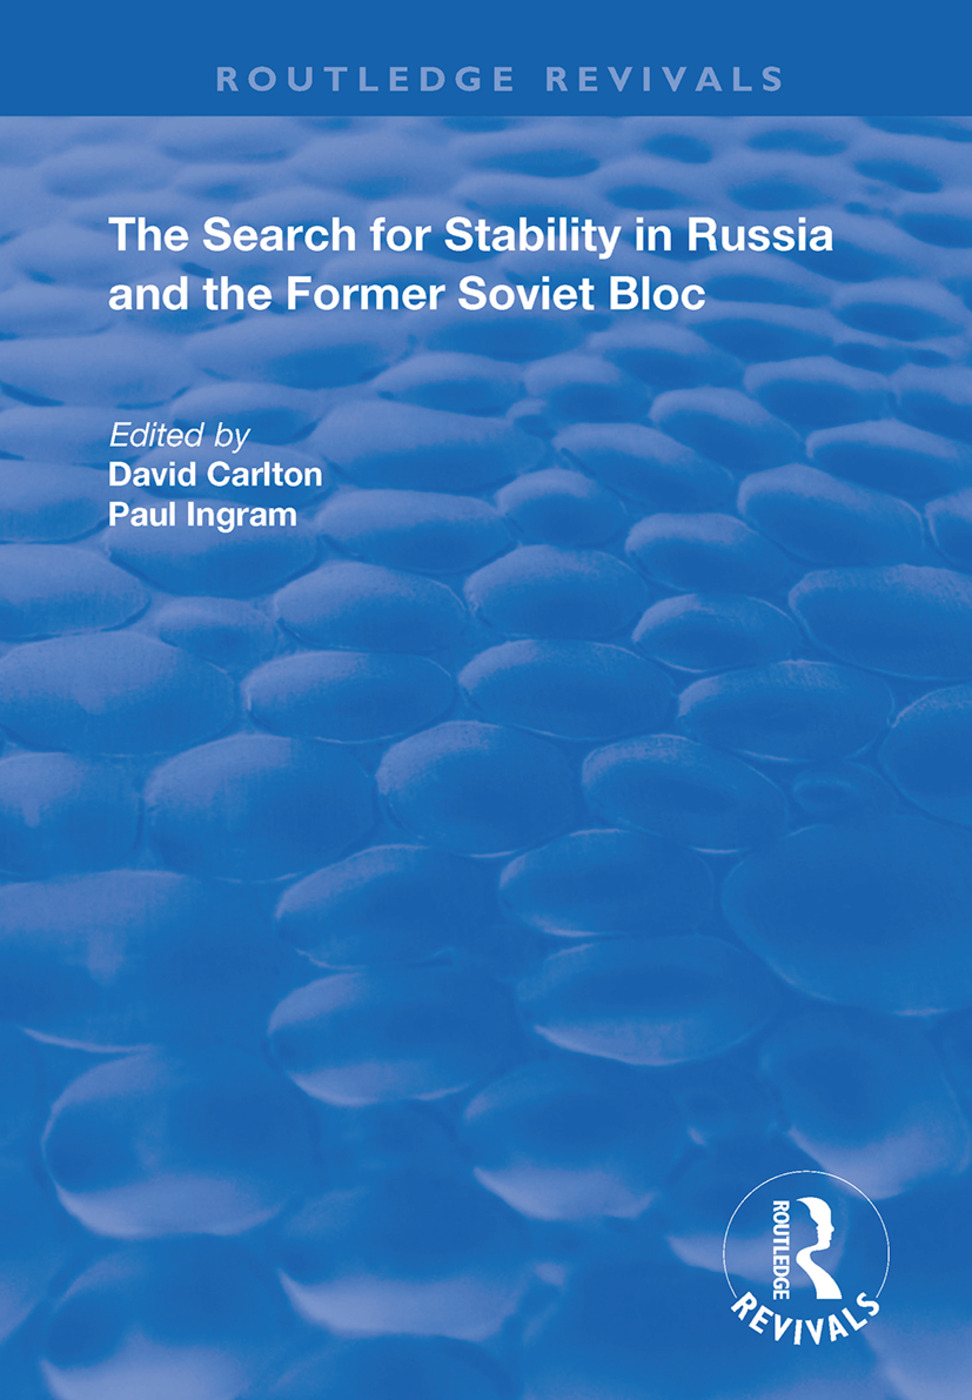 The Search for Stability in Russia and the Former Soviet Bloc book cover